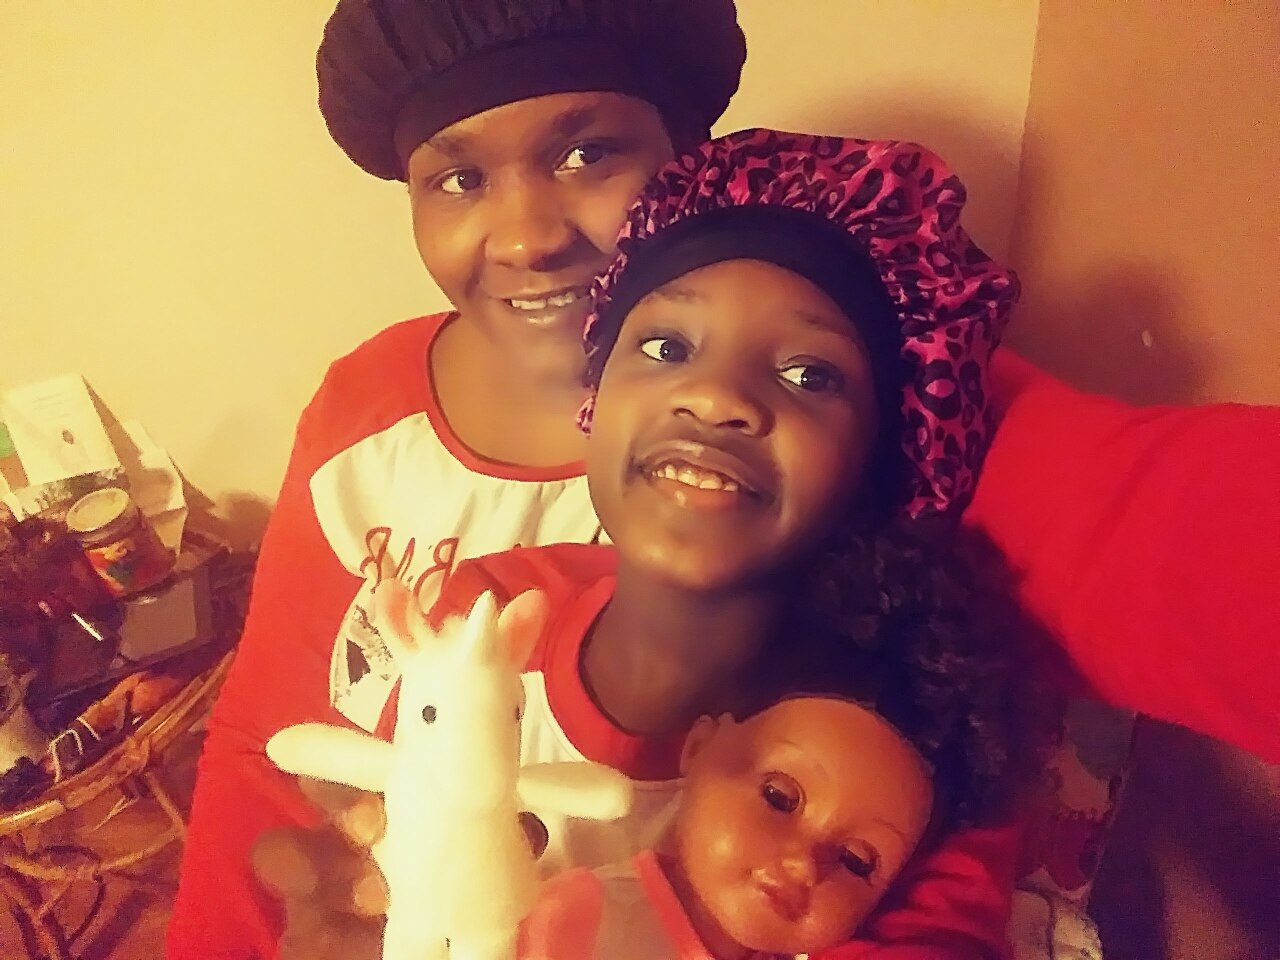 Kendra Davis smiles as she takes a photo with her daughter, who also is smiling and holding a baby doll and unicorn toy.